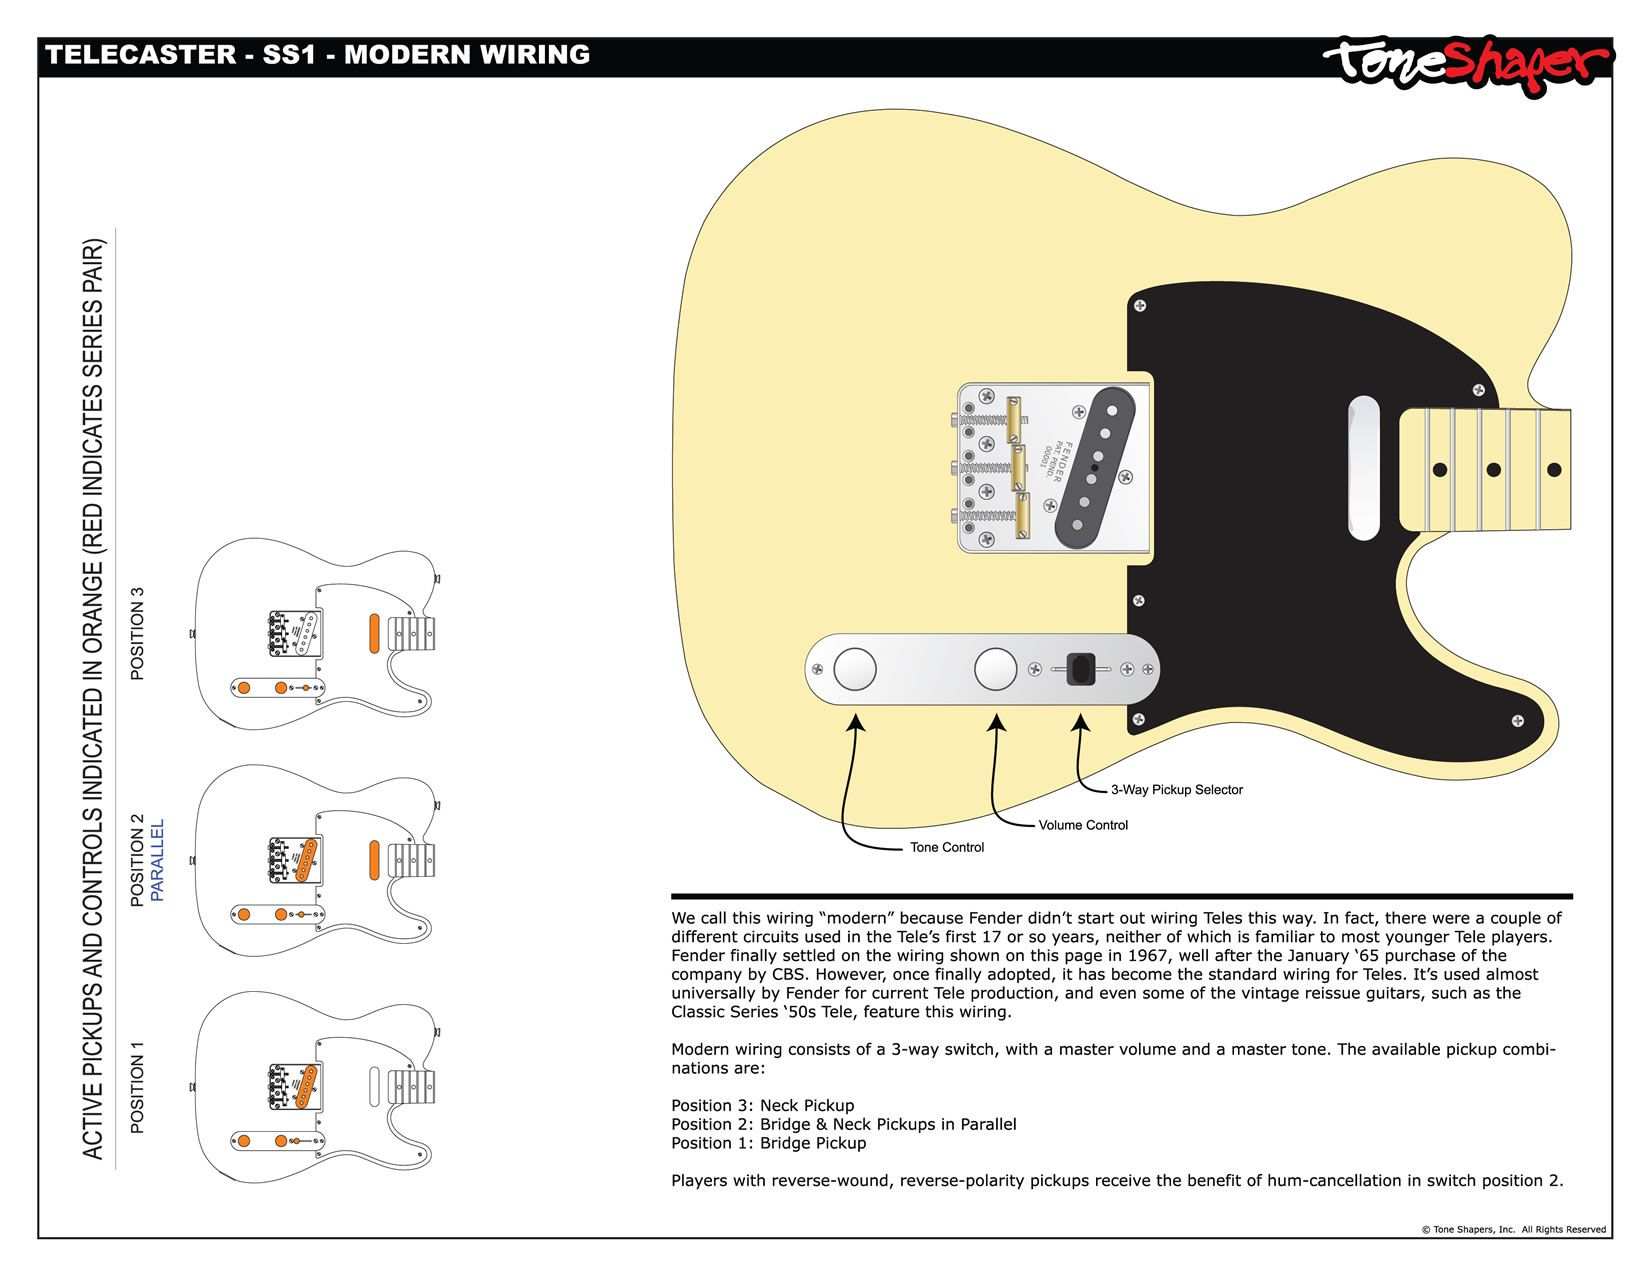 [DIAGRAM_34OR]  BG_9503] Fender 52 Reissue Telecaster Wiring Diagram Wiring Diagram | Fender 62 Telecaster Wiring Diagram |  | Over Acion Vira Mohammedshrine Librar Wiring 101